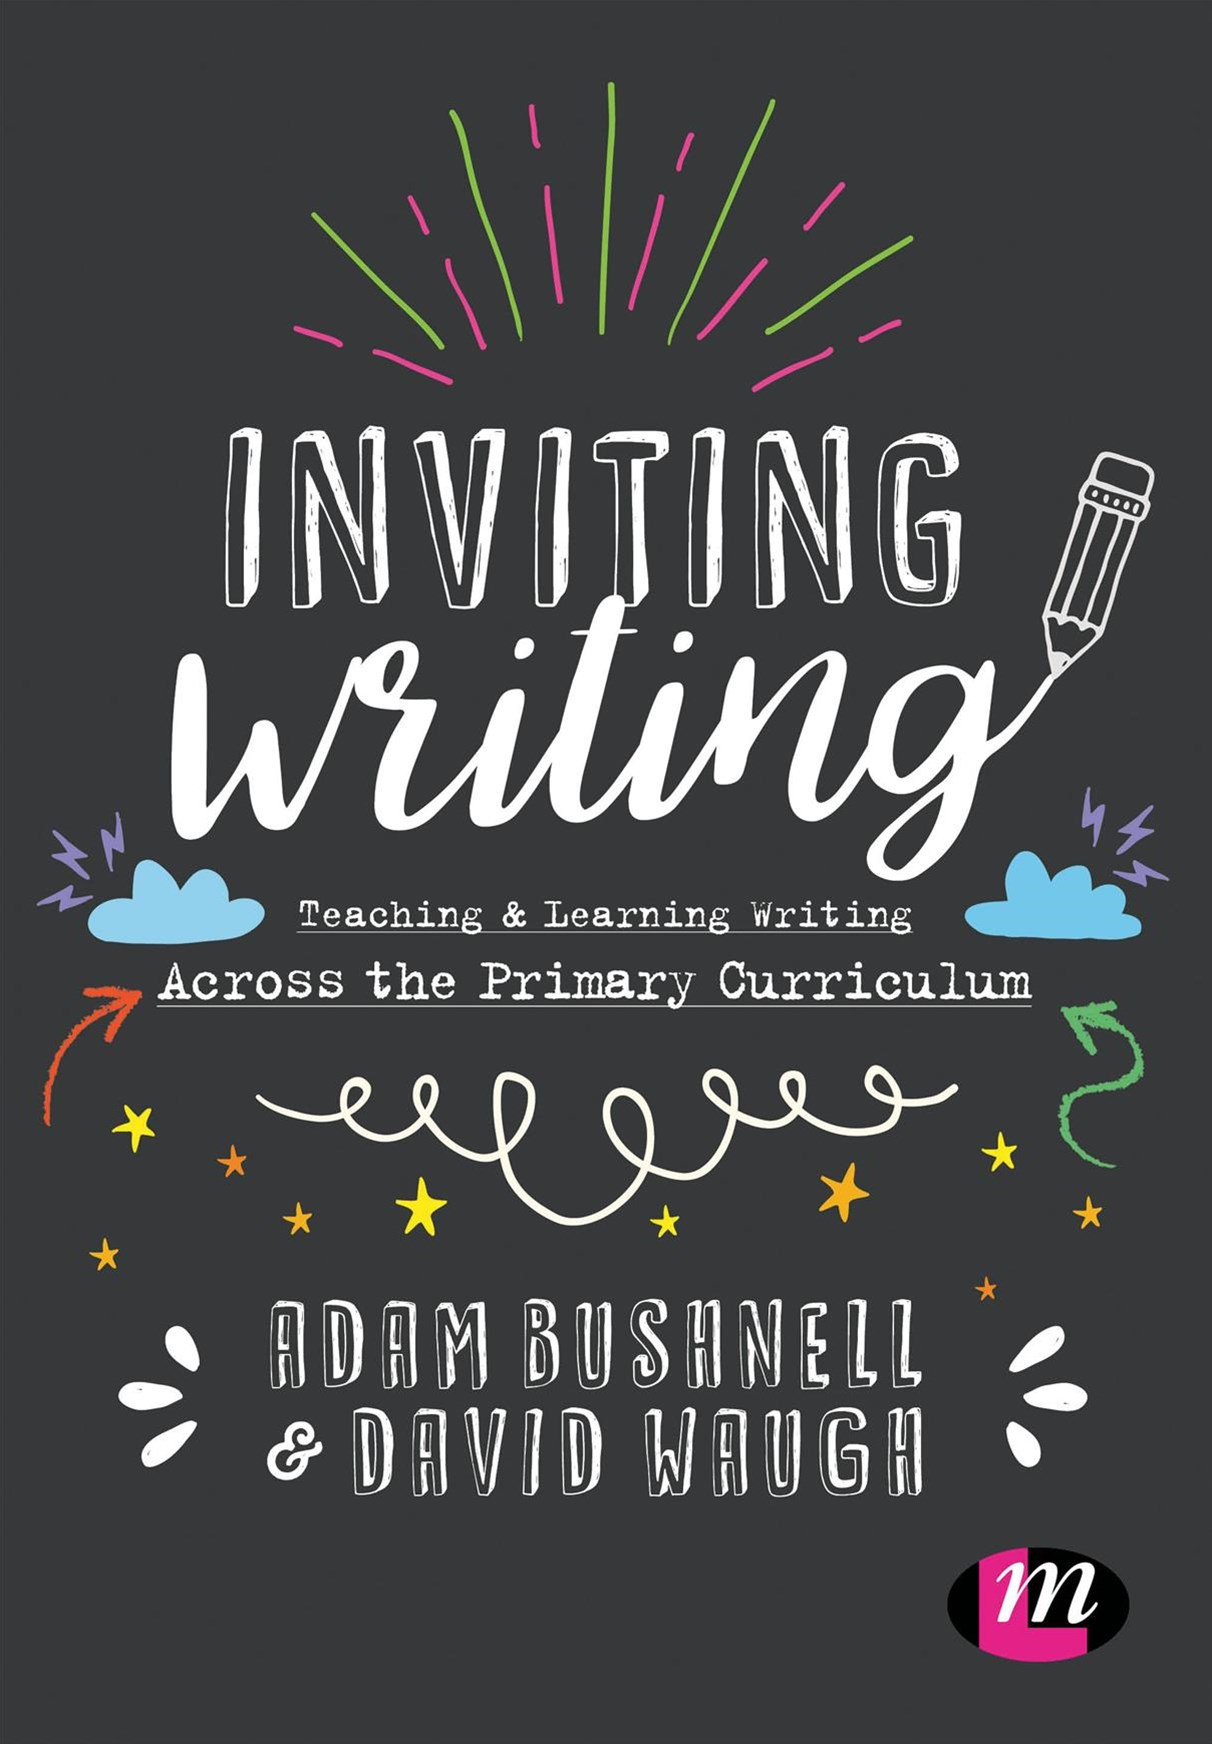 Inviting Writing